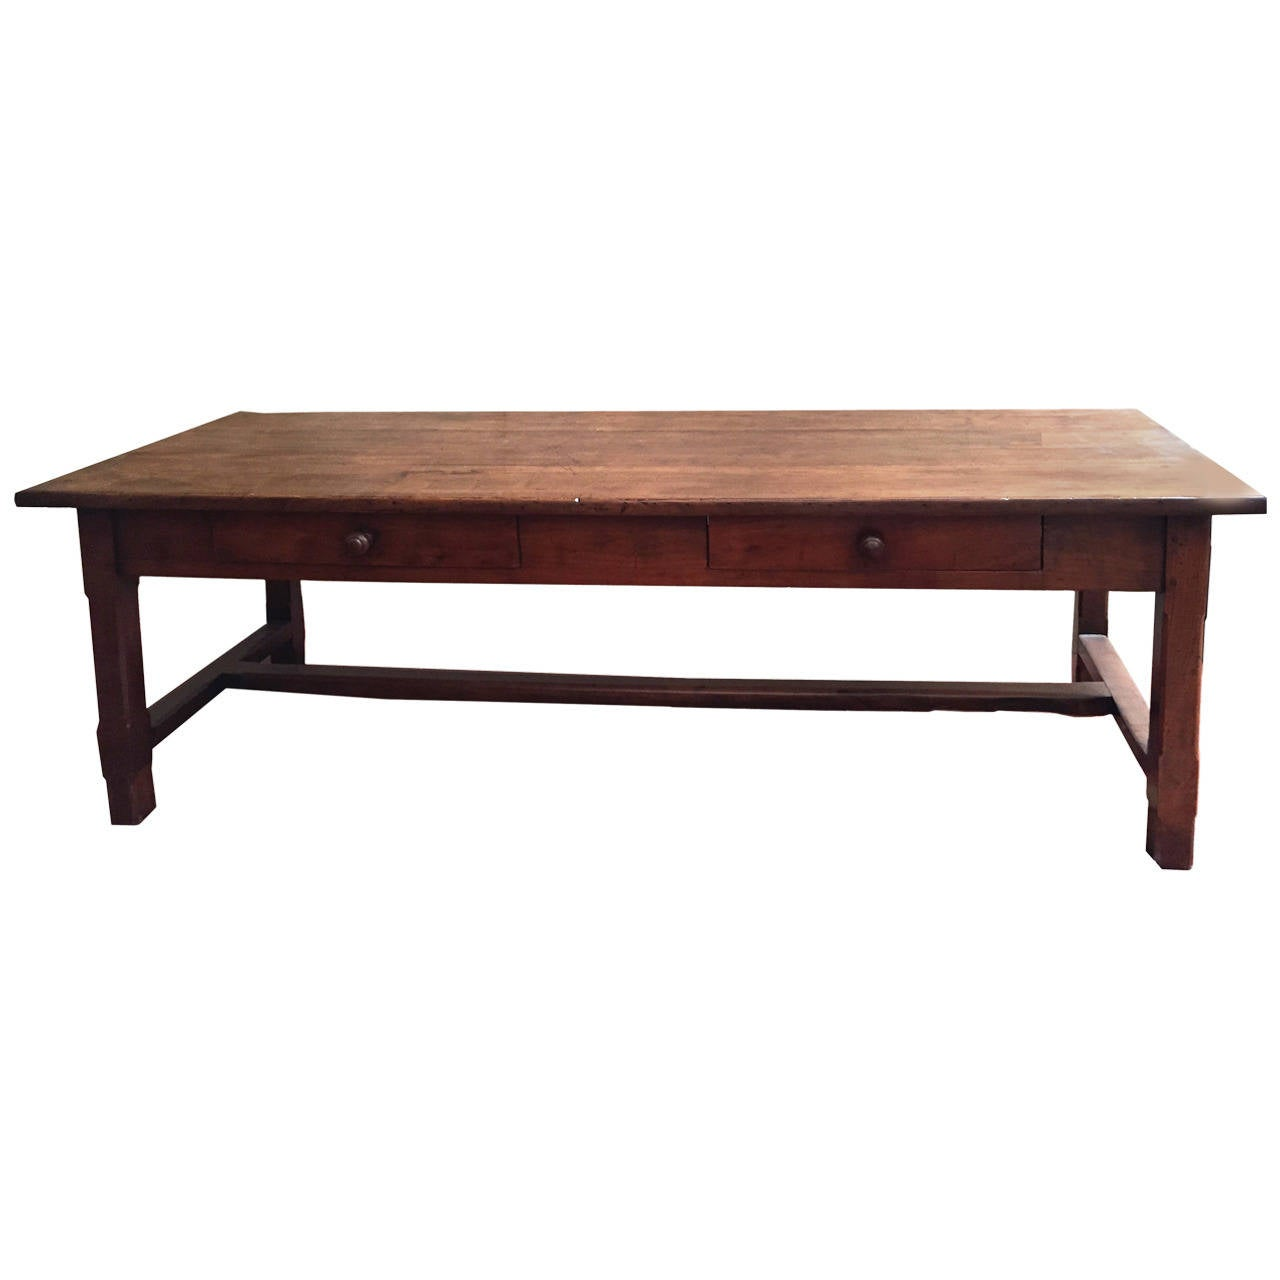 19th Century French Farmhouse Trestle Table in Cherrywood For Sale at 1stdibs